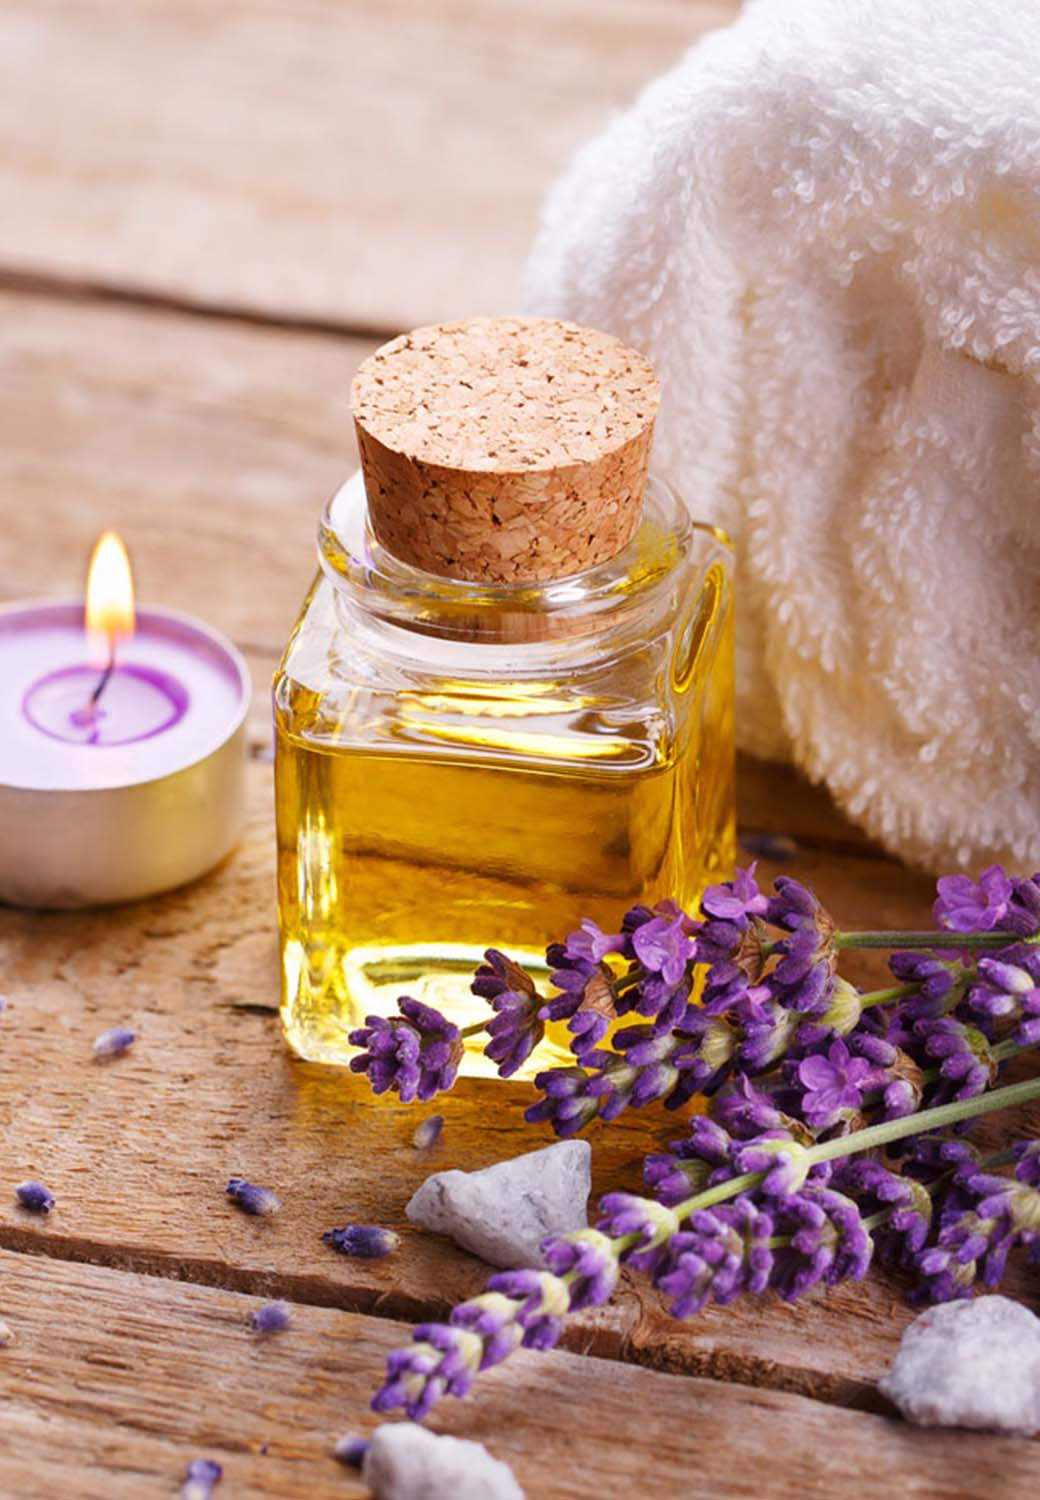 Greenway Hotel Spa treatments essential oils and lavender